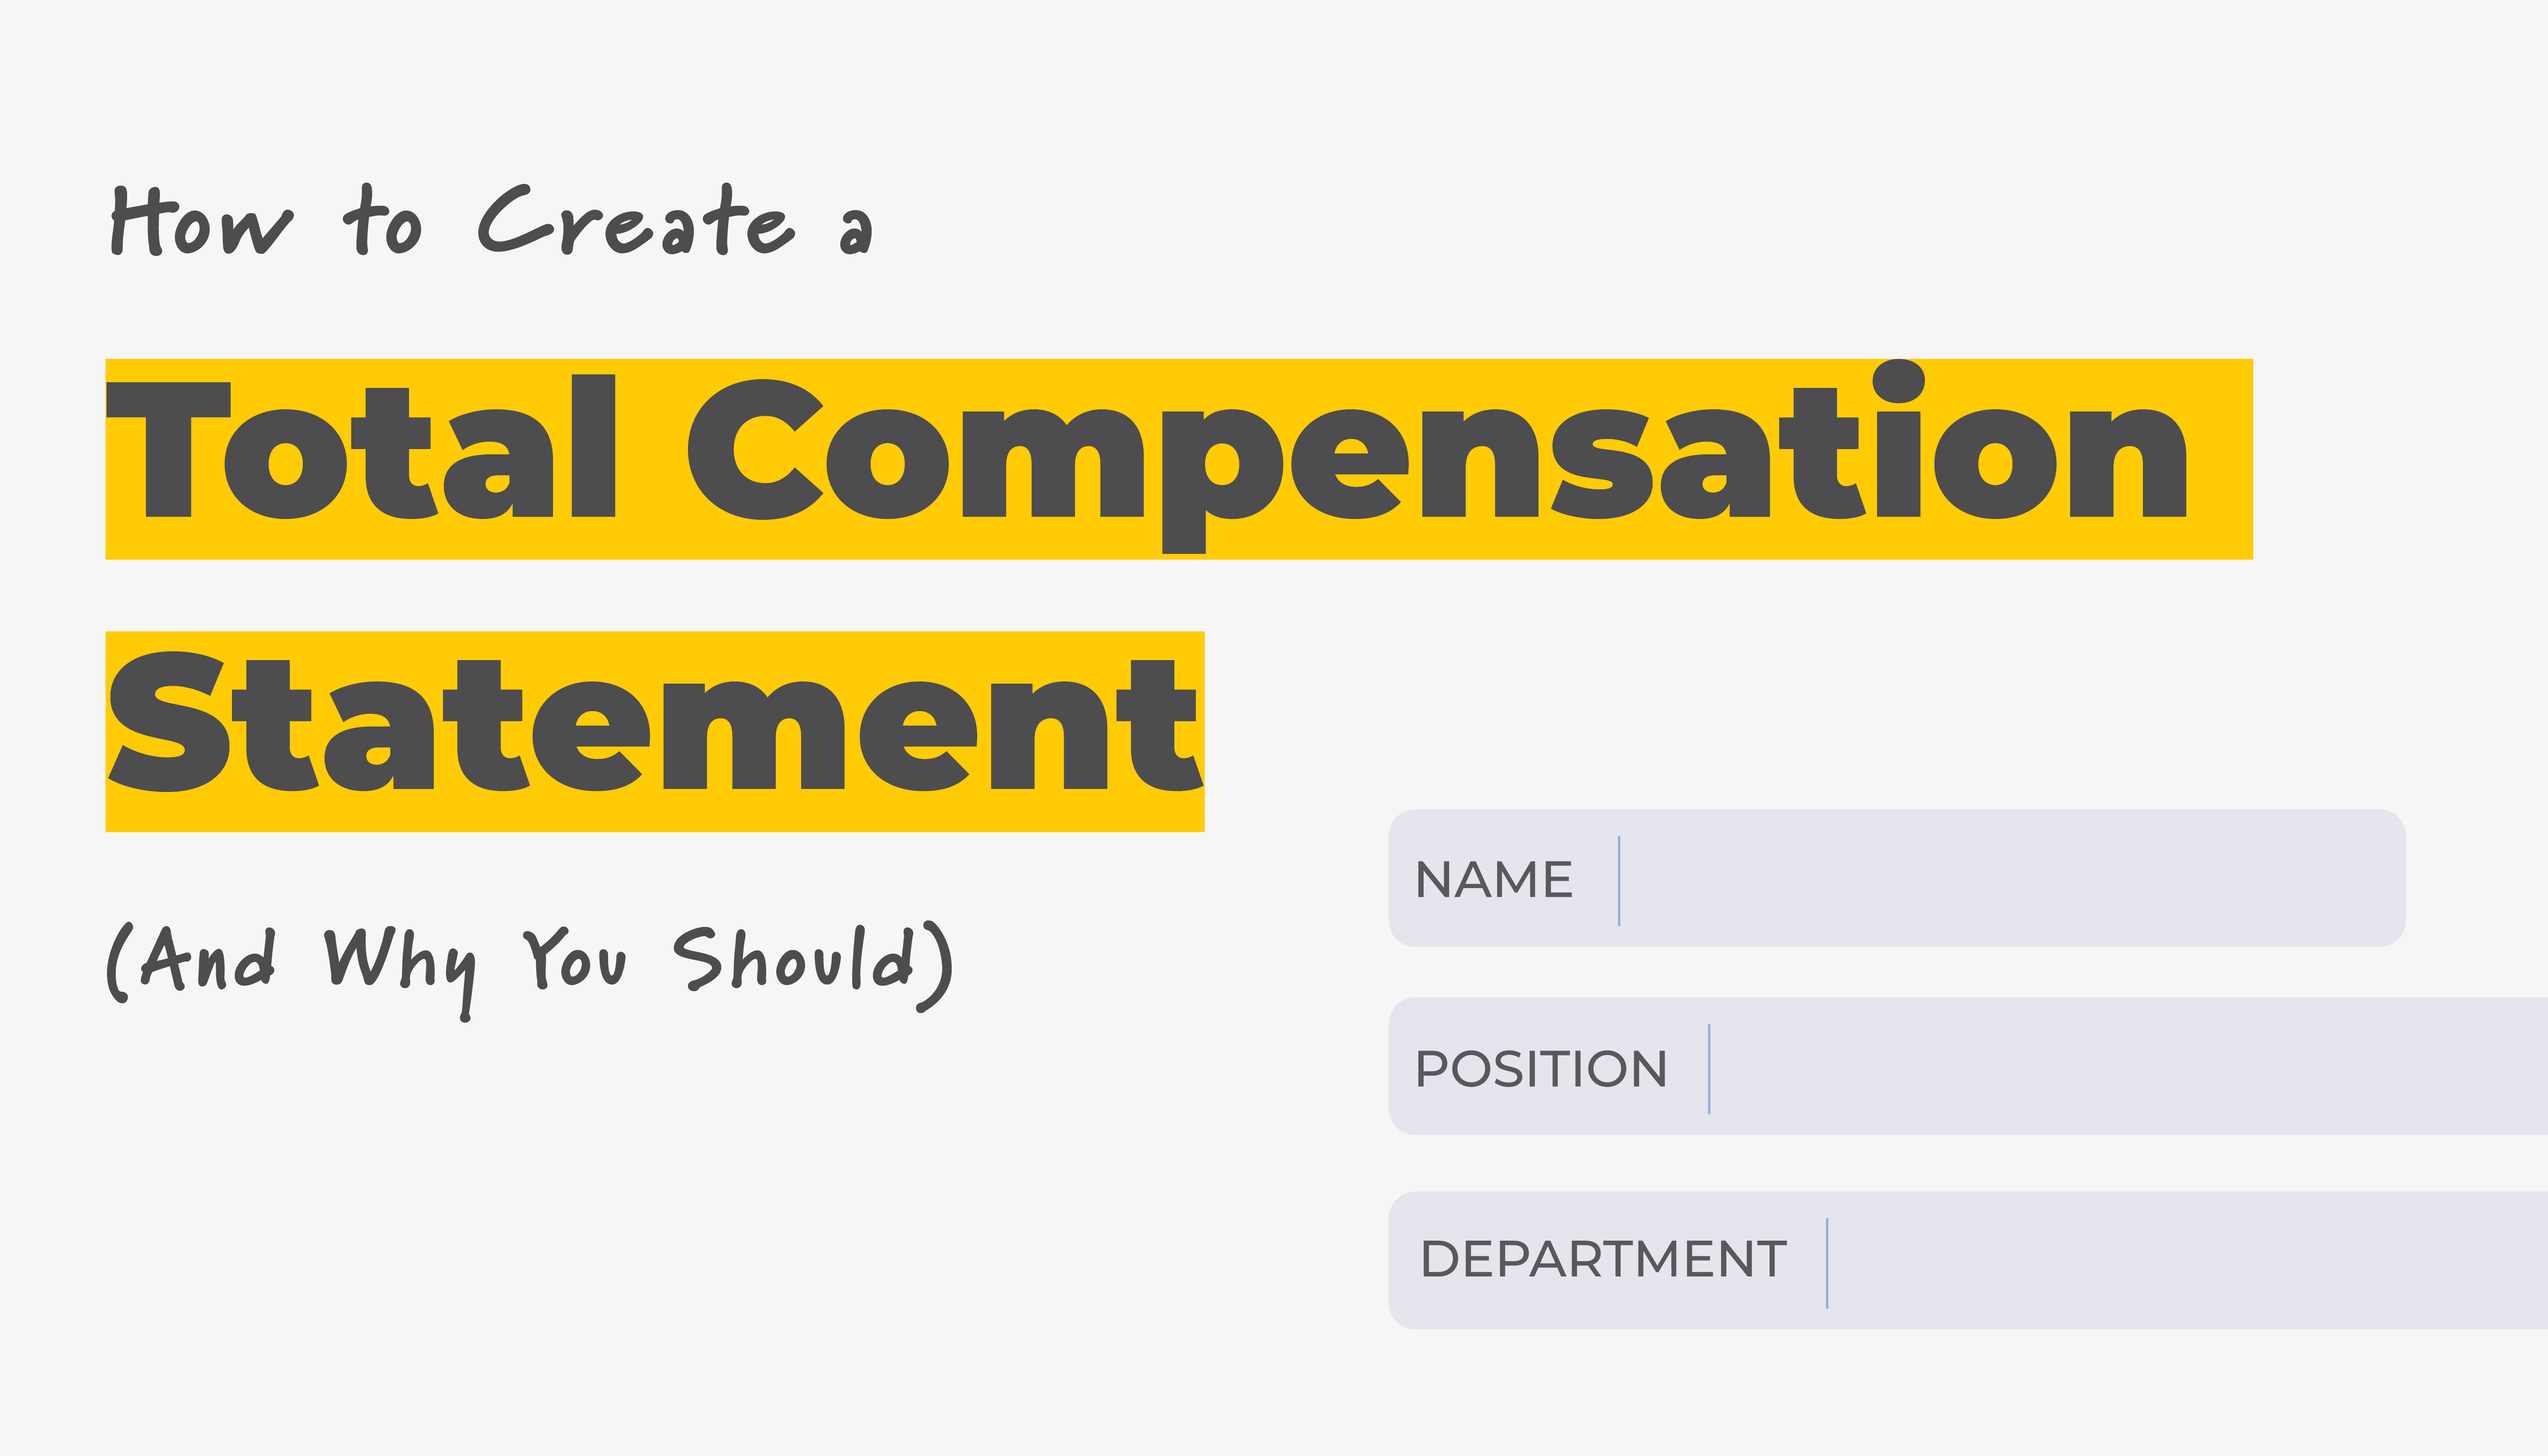 How to Create a Total Compensation Statement | Form Fields | Benefits by Design